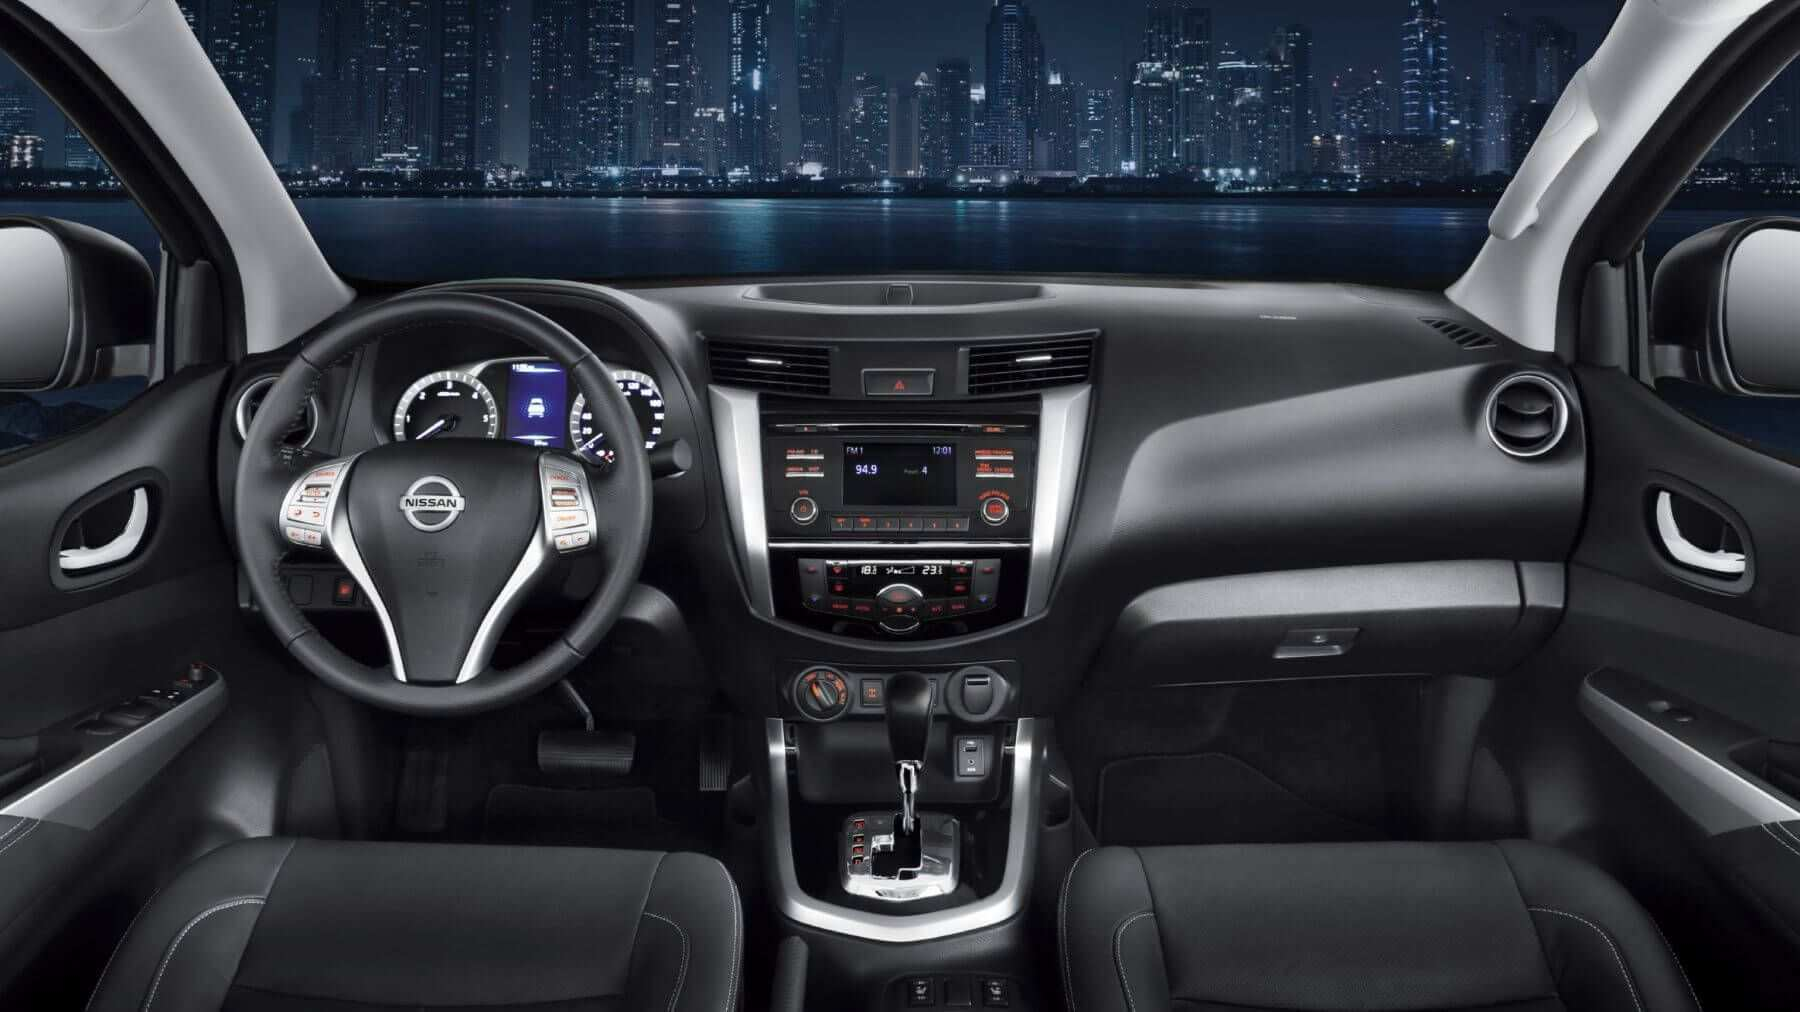 89 Gallery of Nissan 2020 Interior Photos with Nissan 2020 Interior